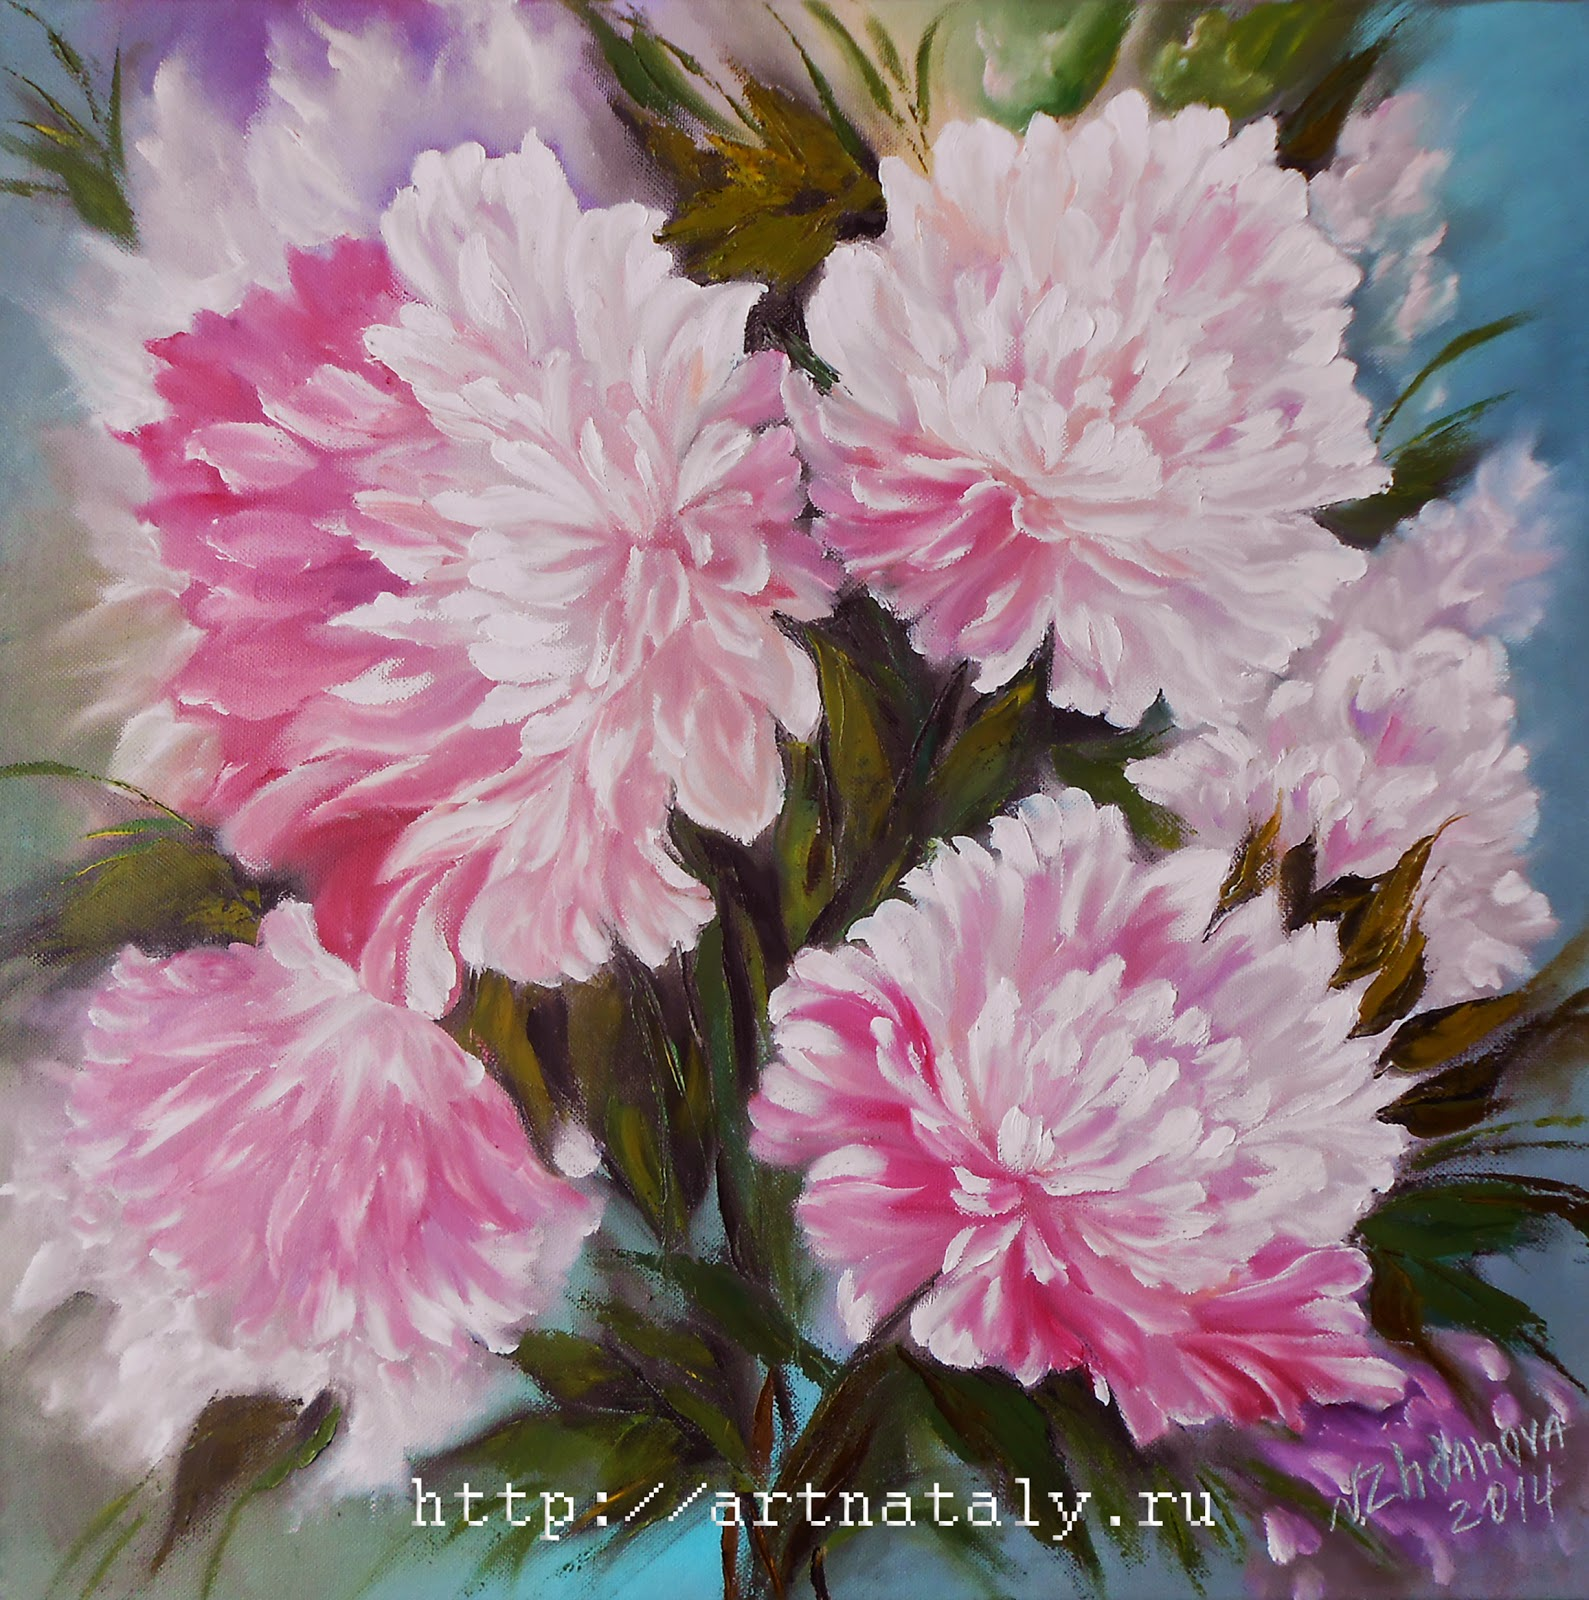 Peonies pink, Russian art painting Flowers wall art in style Impressionism.  Oil on canvas, mixed painting technique, palette knife.